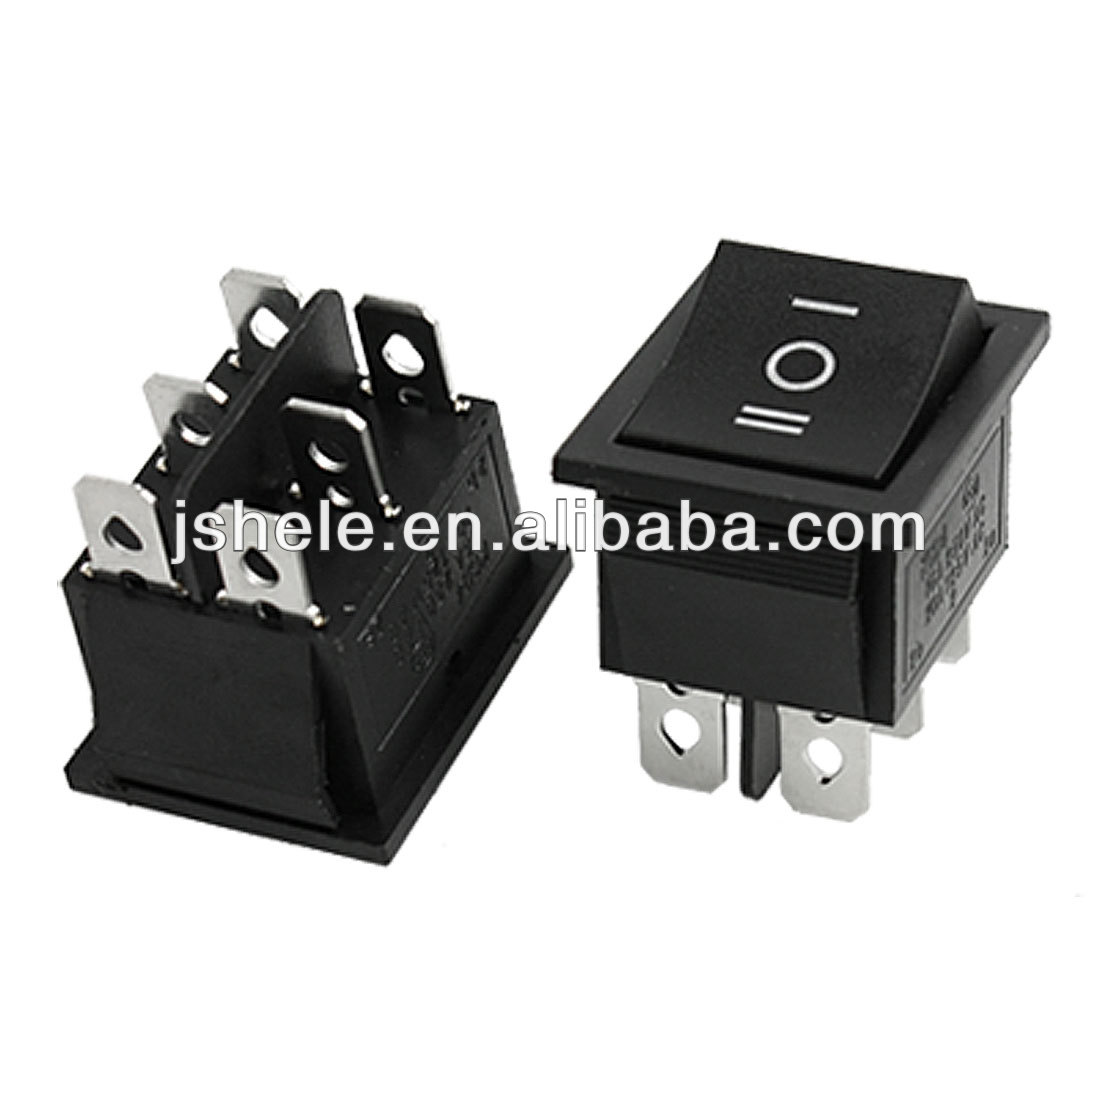 6-Pin 6A 125VAC DPST Rocker Switch On-On  Panel Mount Snap-In